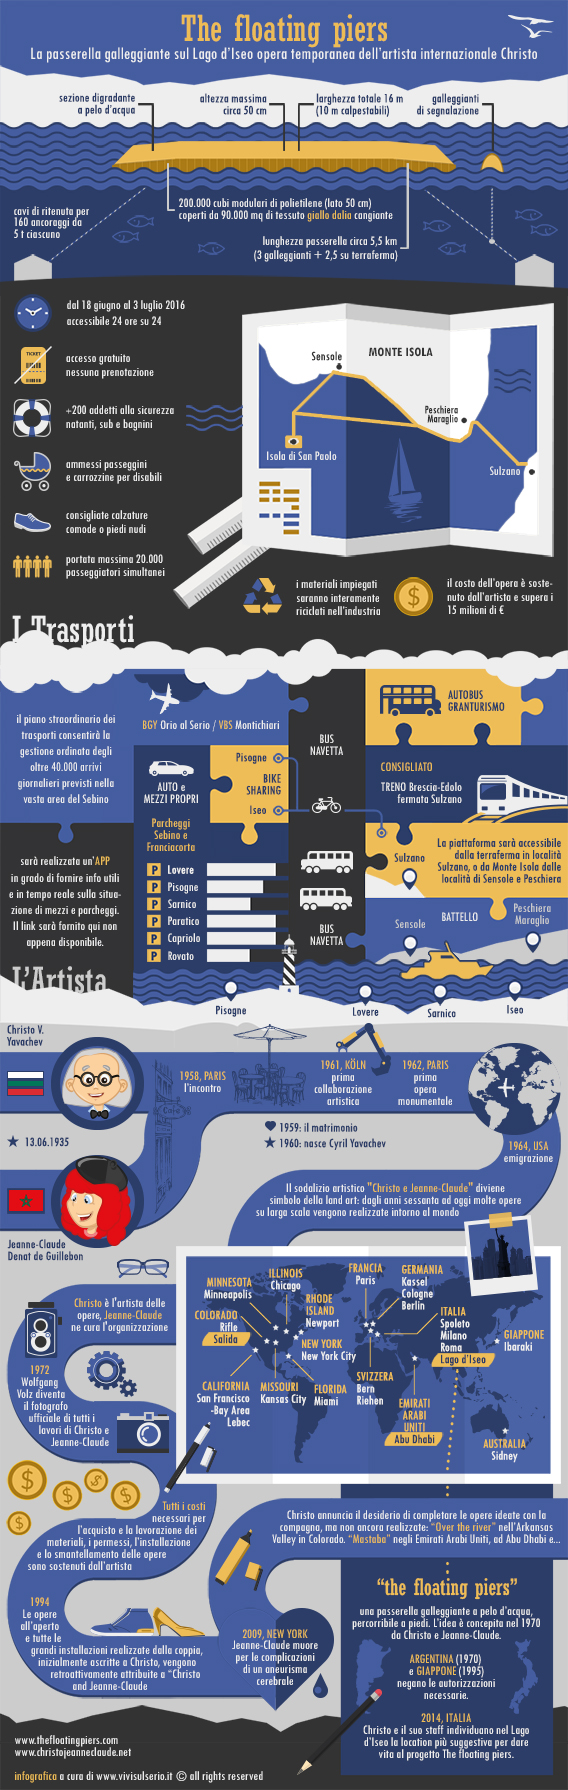 the floating piers christo infografica